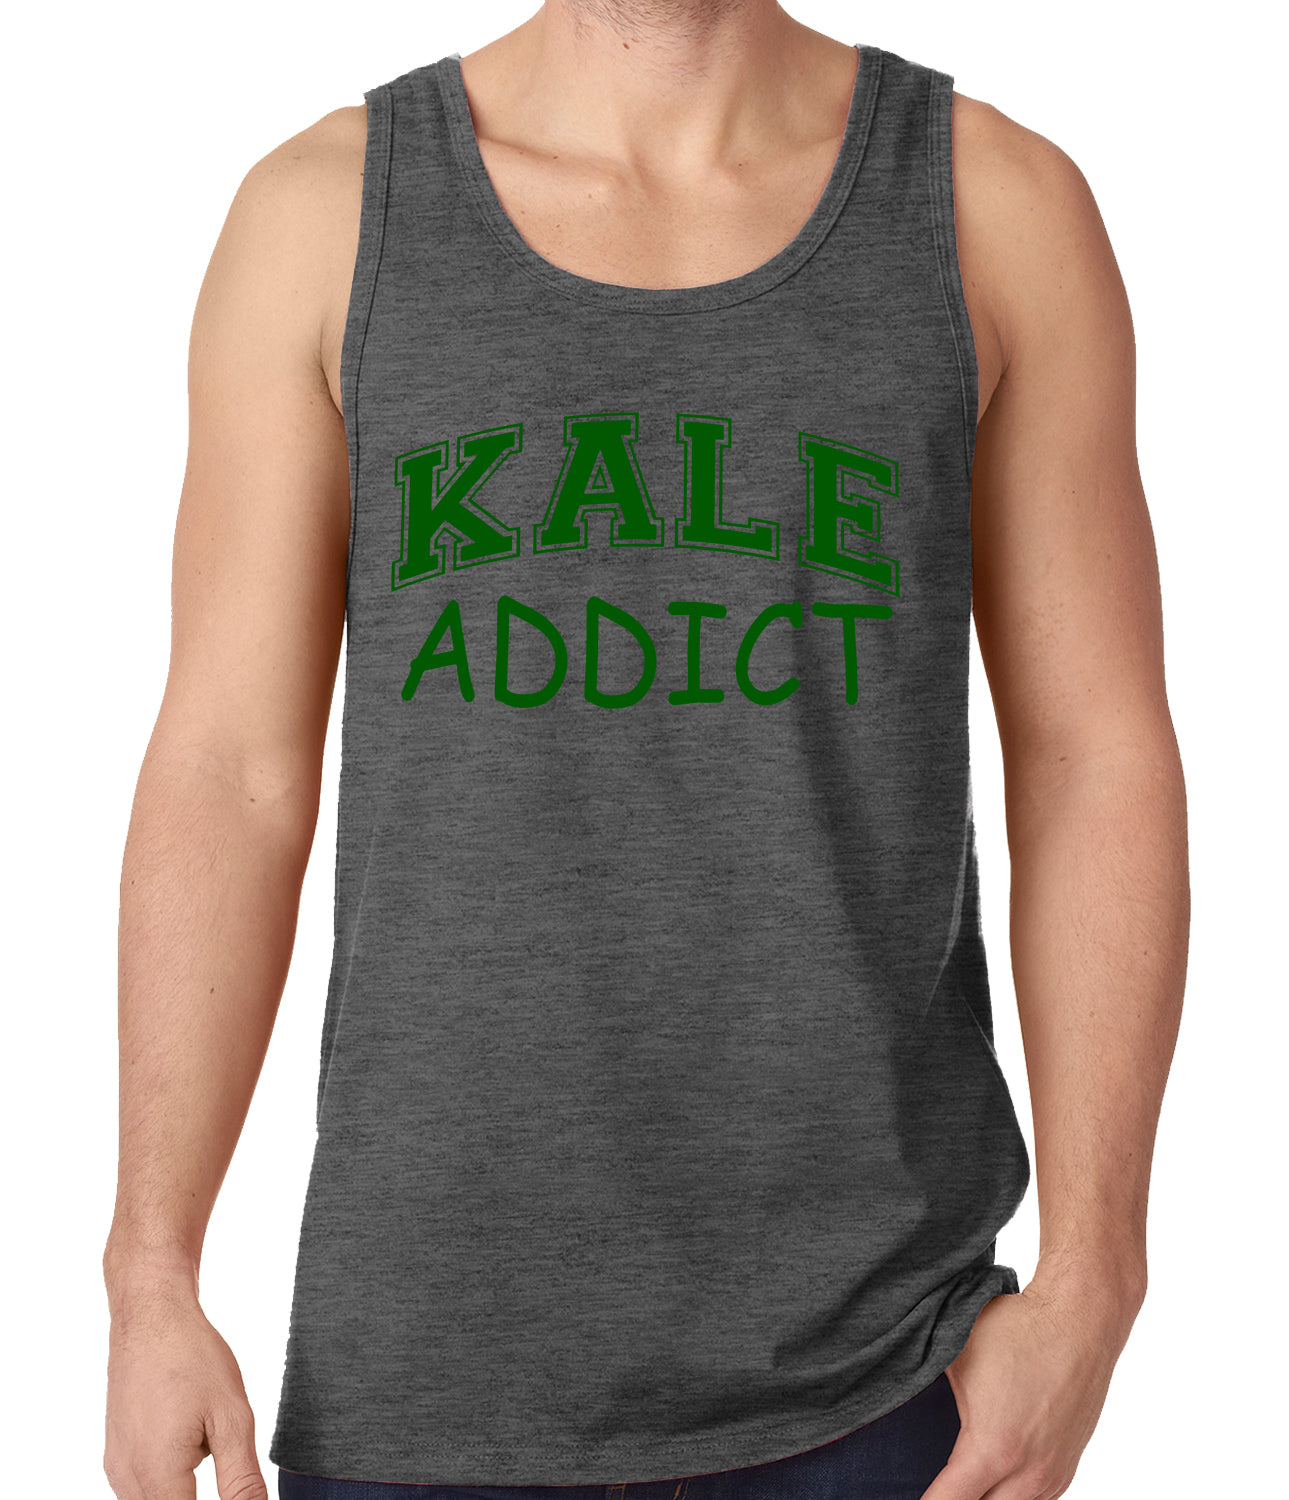 Kale Addict Tank Top